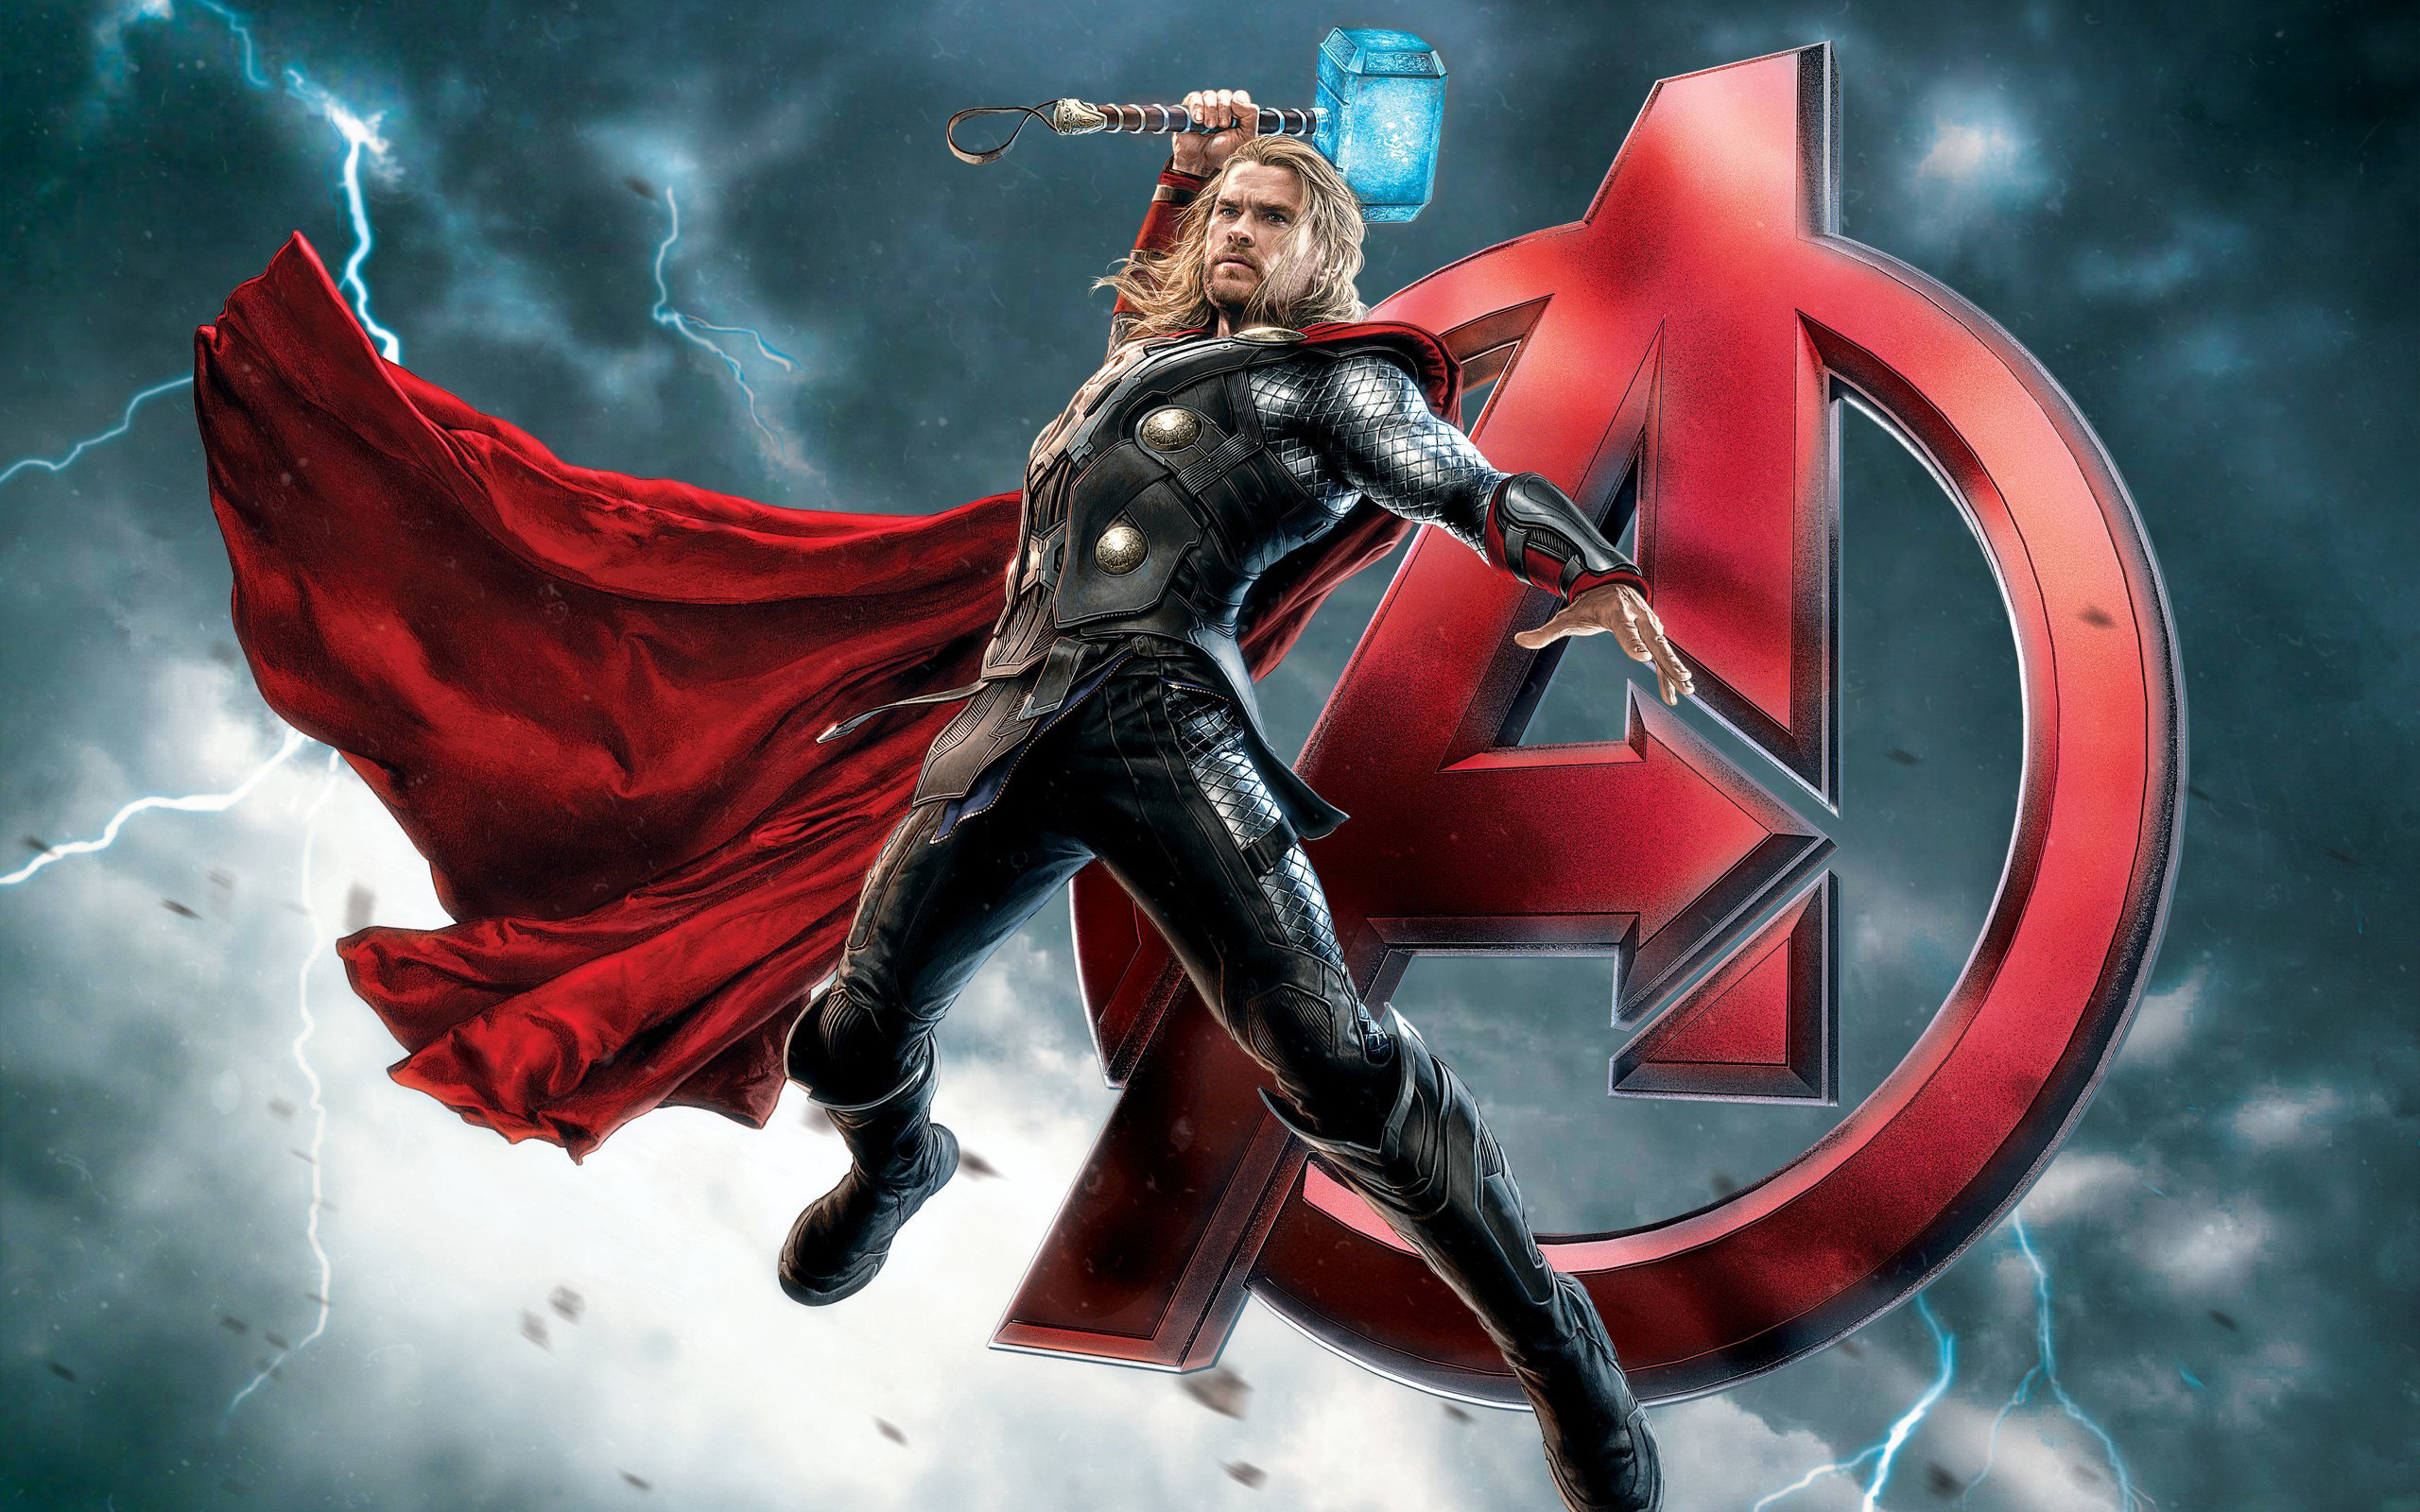 Res: 2560x1600, Tags: Thor Avengers